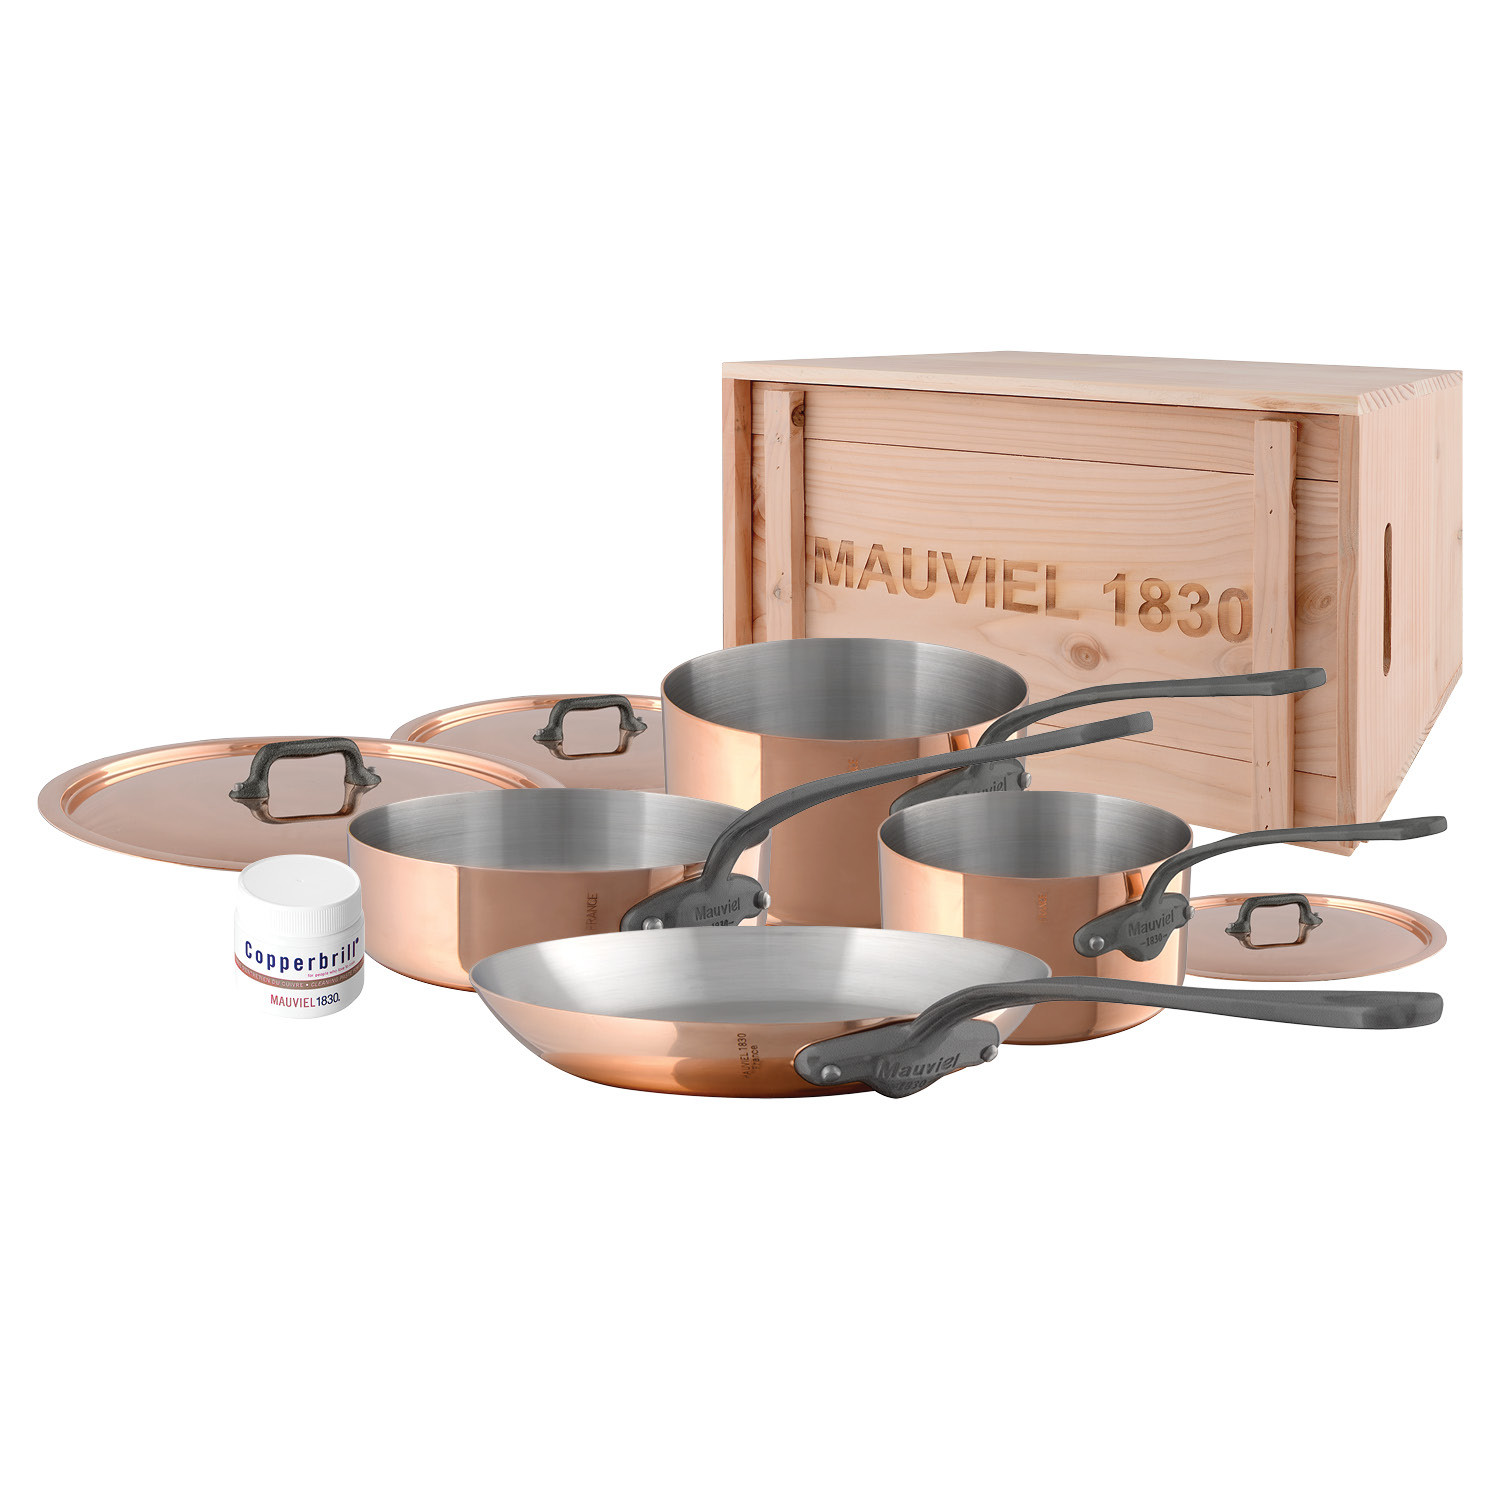 M'150c2 - 7 pc. Copper Set - 1.5mm  S.S. Interior Cast Iron Handles in a Wood Crate